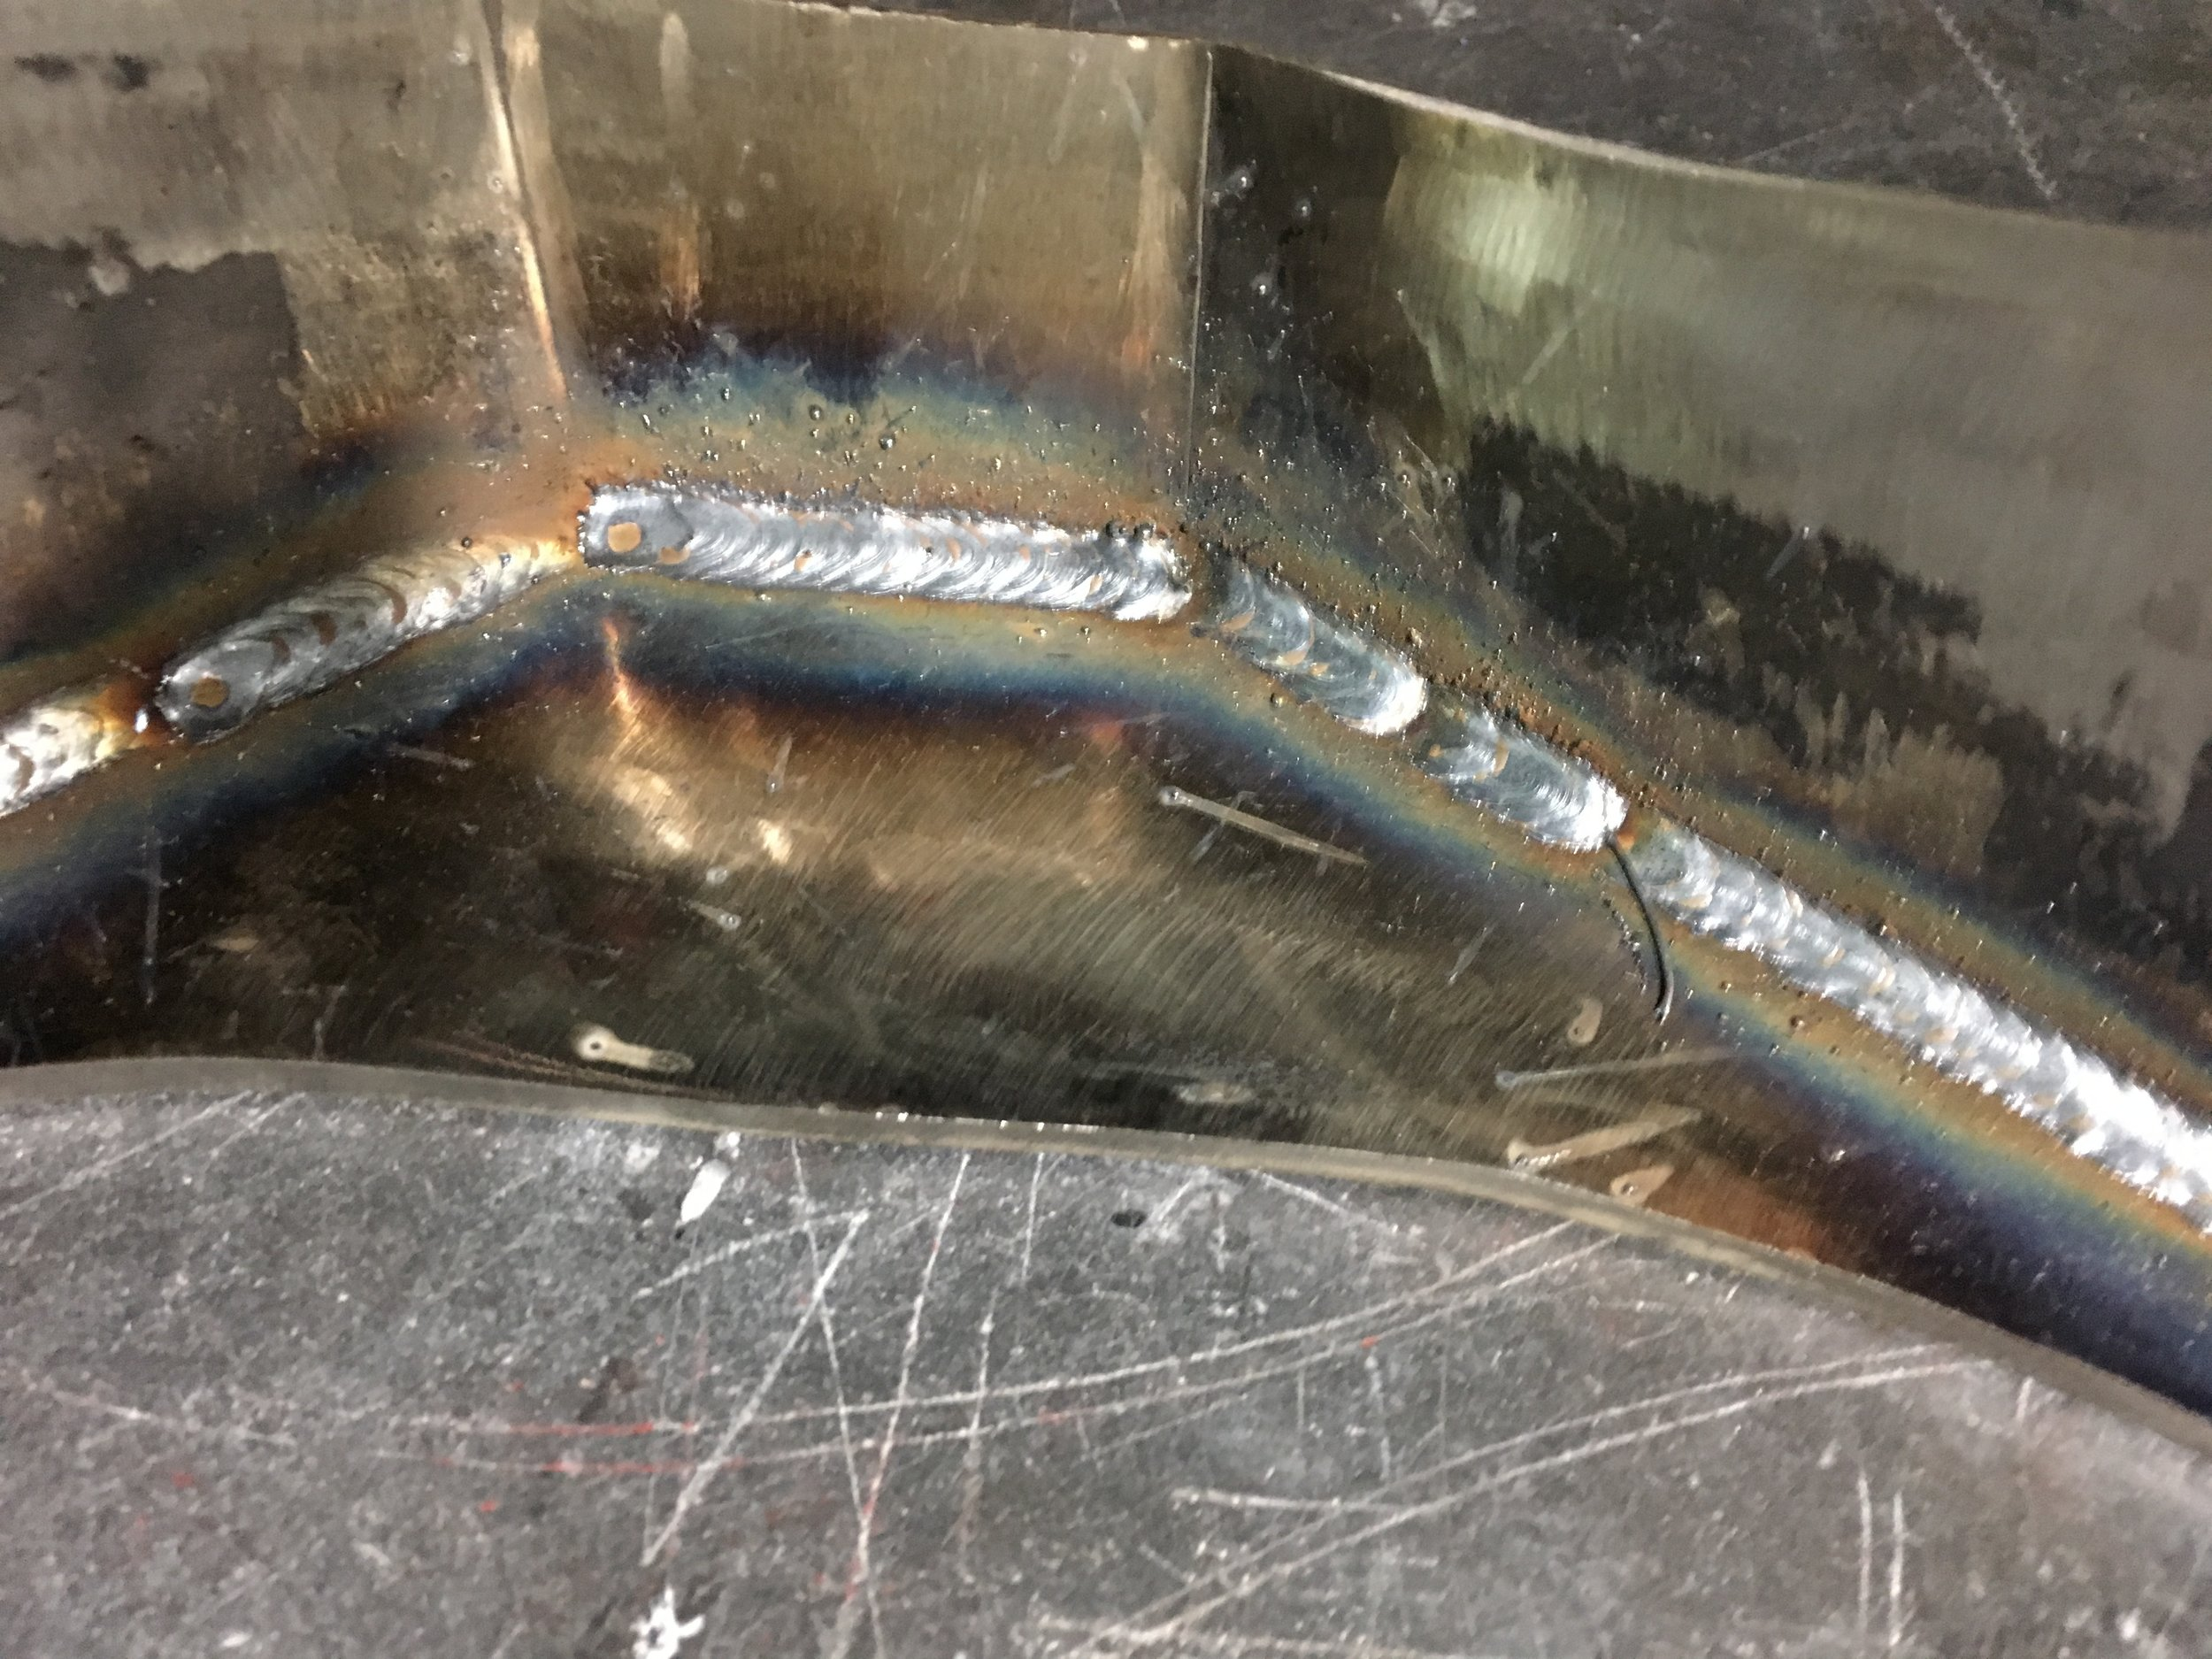 Decent welds. Too bad they are inside the brace where they will never be seen.